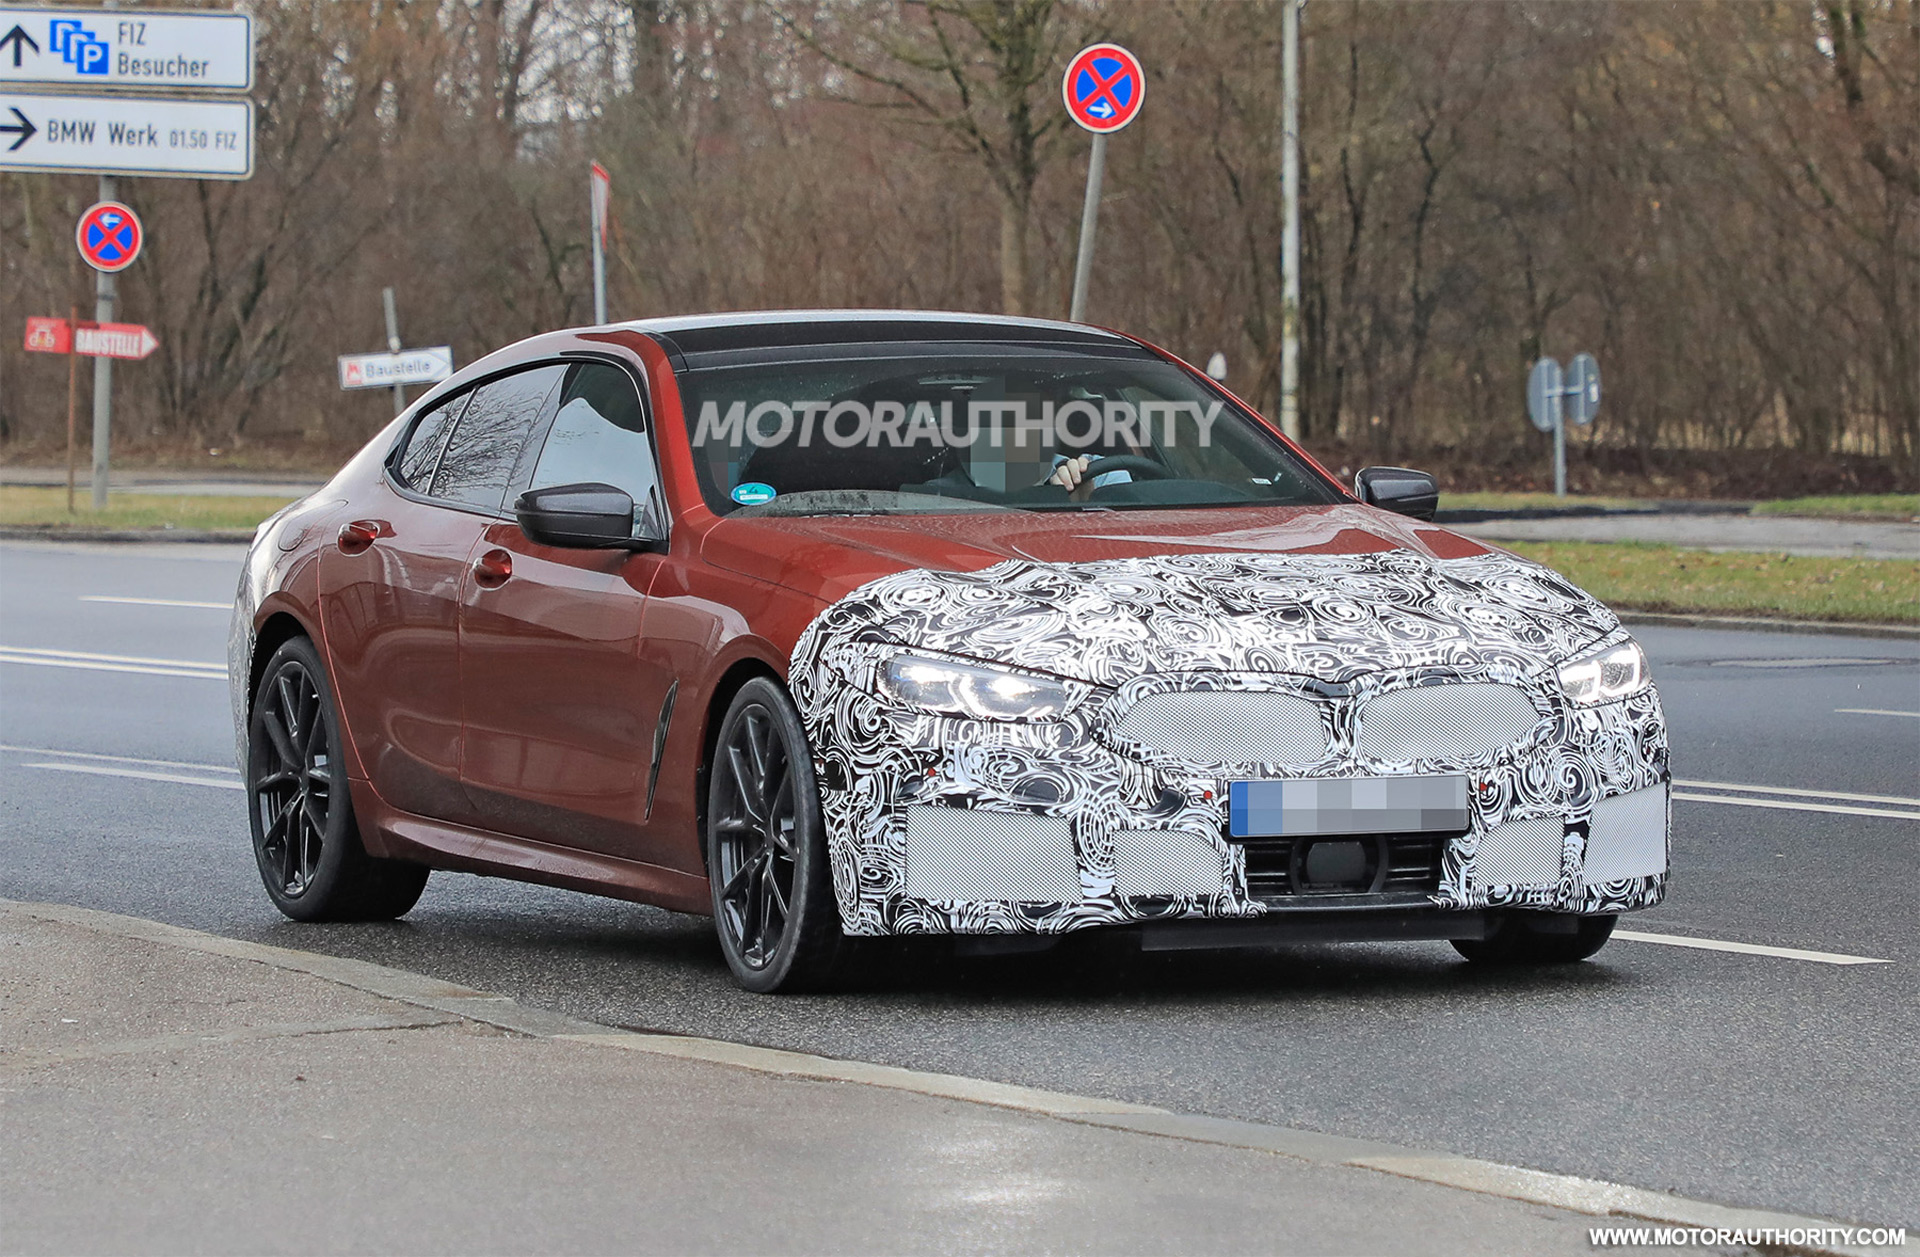 2023 BMW 8-Series Gran Coupe spy shots: Mid-cycle update on the way